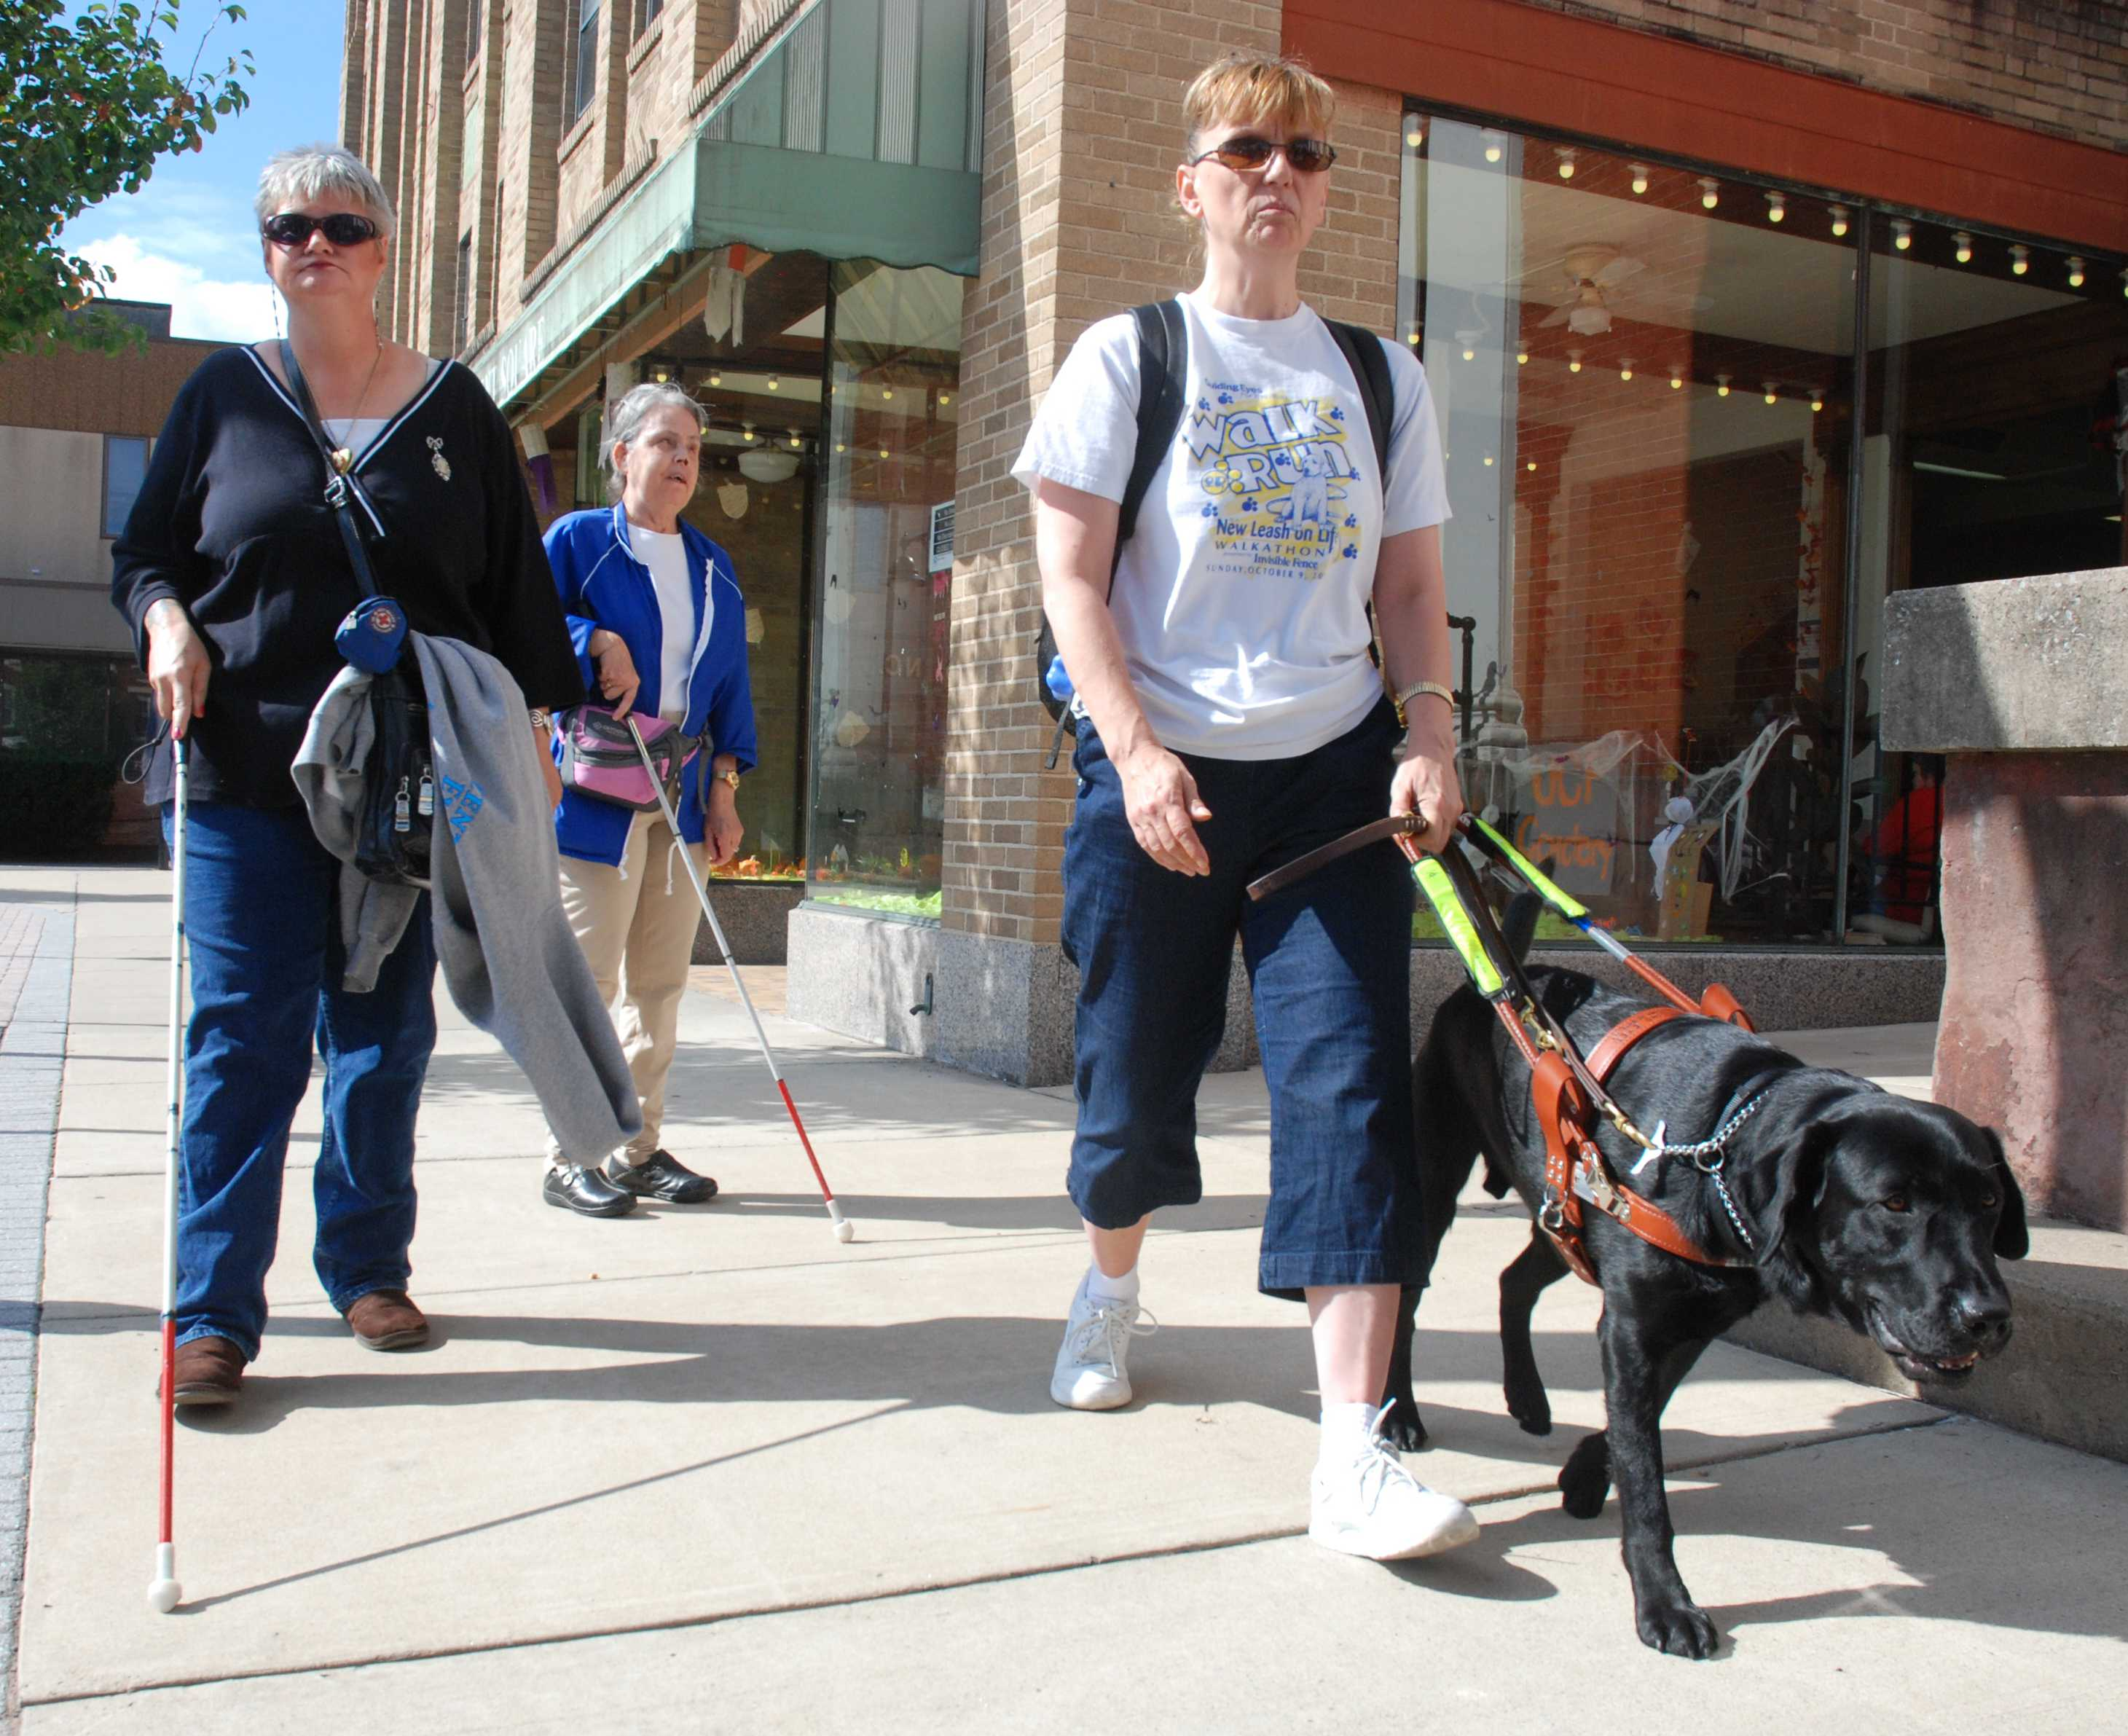 Three of our clients walking down the sidewalk in Lewistown, PA